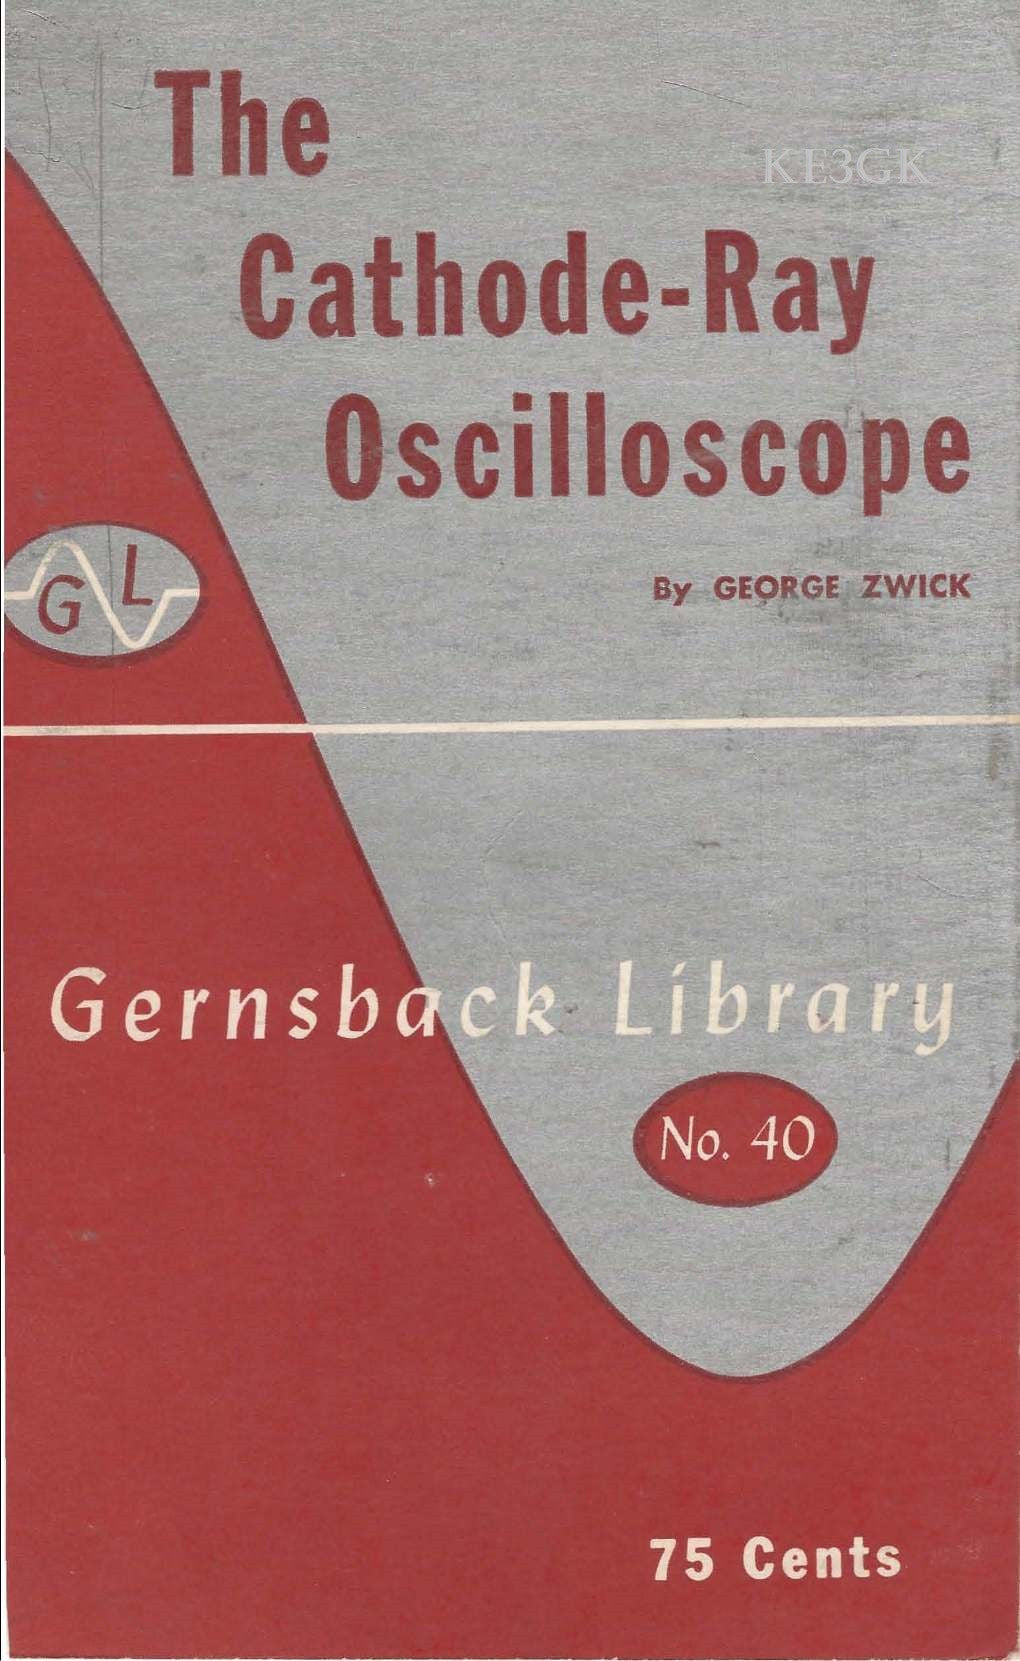 Gernsback Library #40 The Cathode Ray Oscilloscope